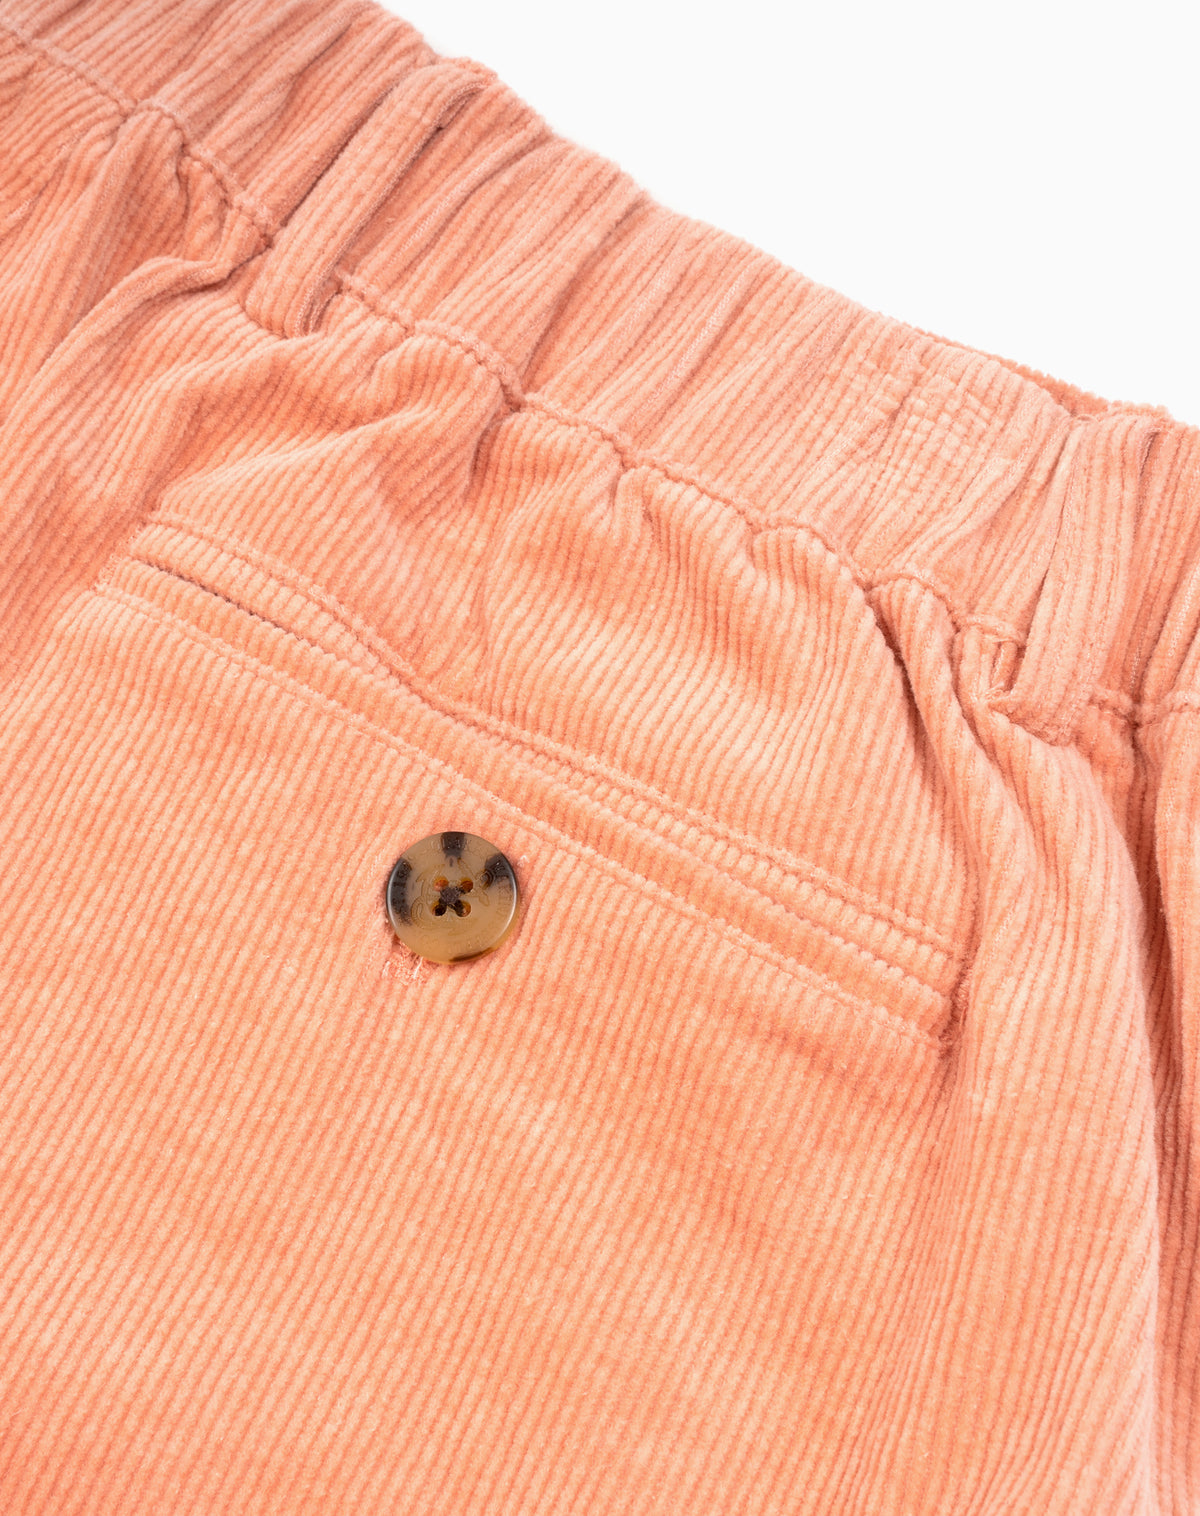 Ventura Corduroy Short in Salmon